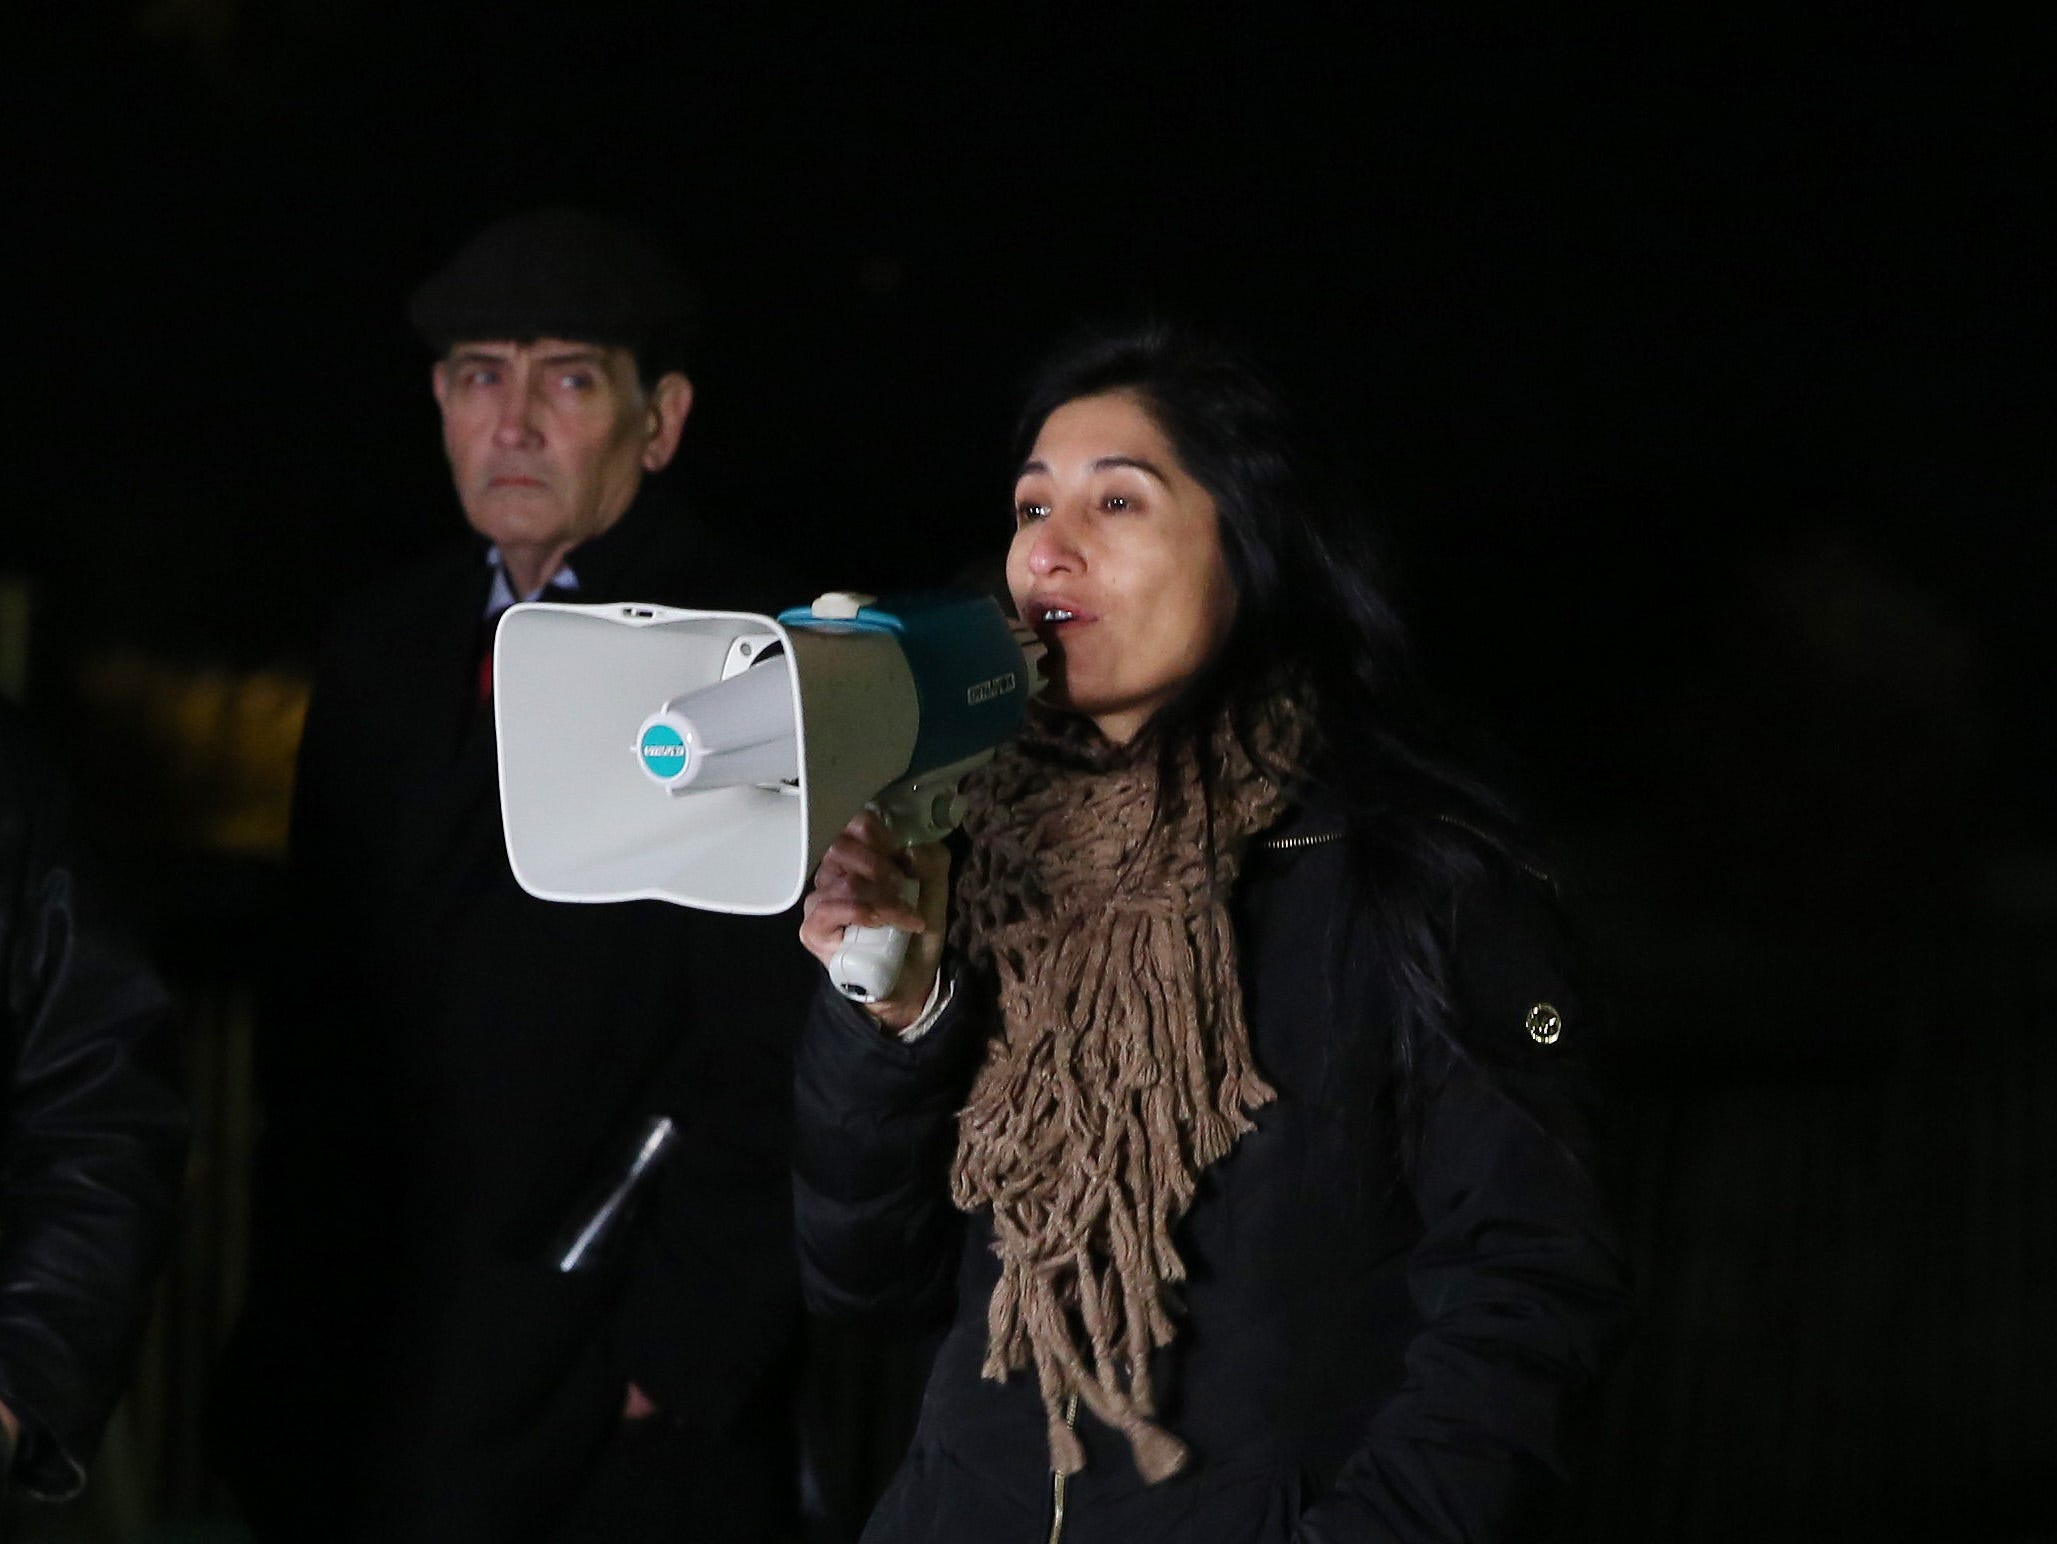 People take part in a anti-violence candlelight vigil at Harbor Island Park in Mamaroneck Nov. 8,  2018.